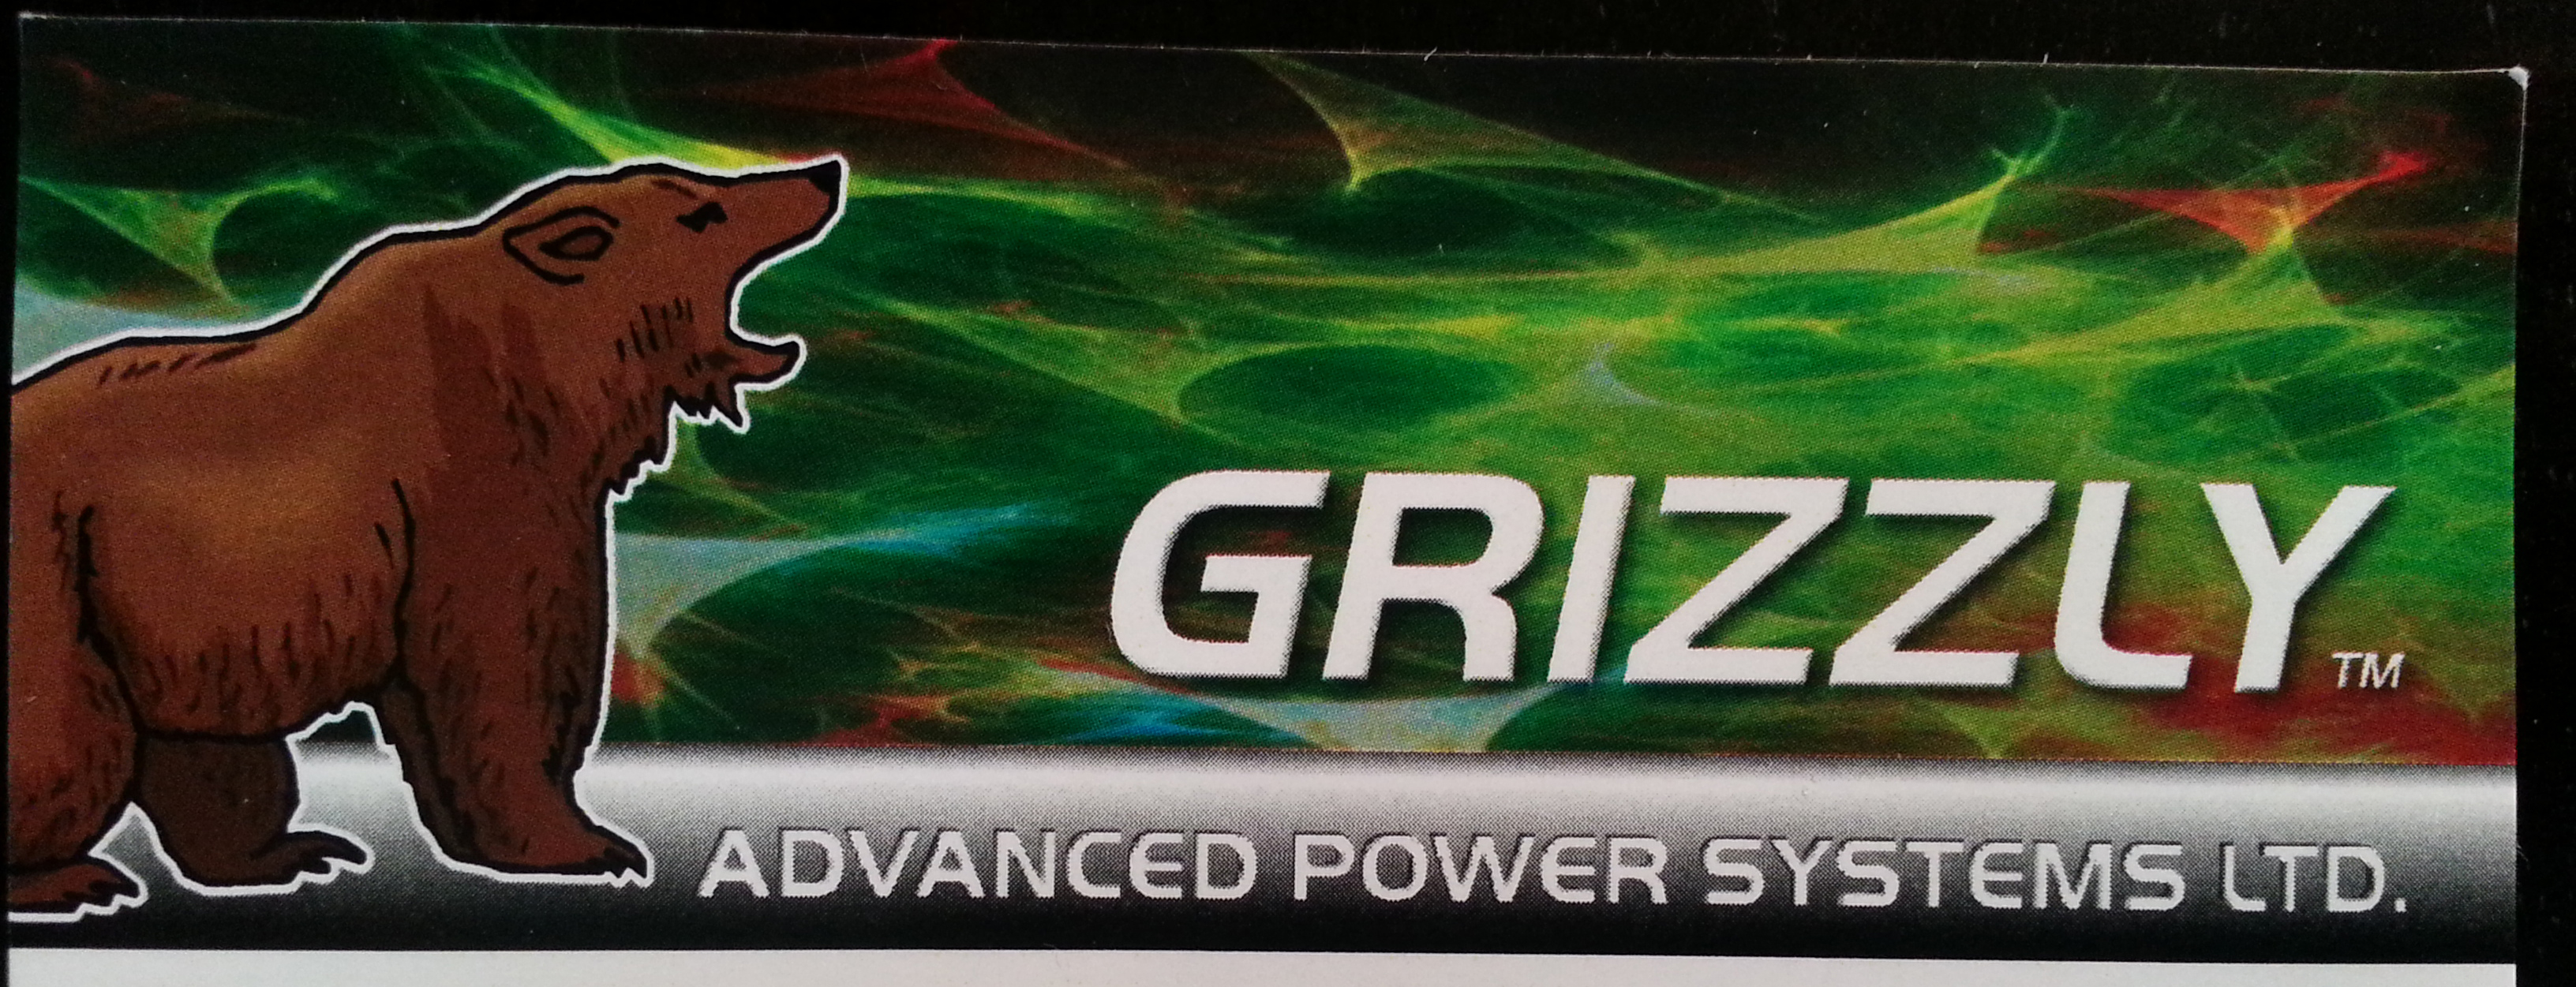 Logo Design Contest for Grizzly Advanced Power Systems Ltd